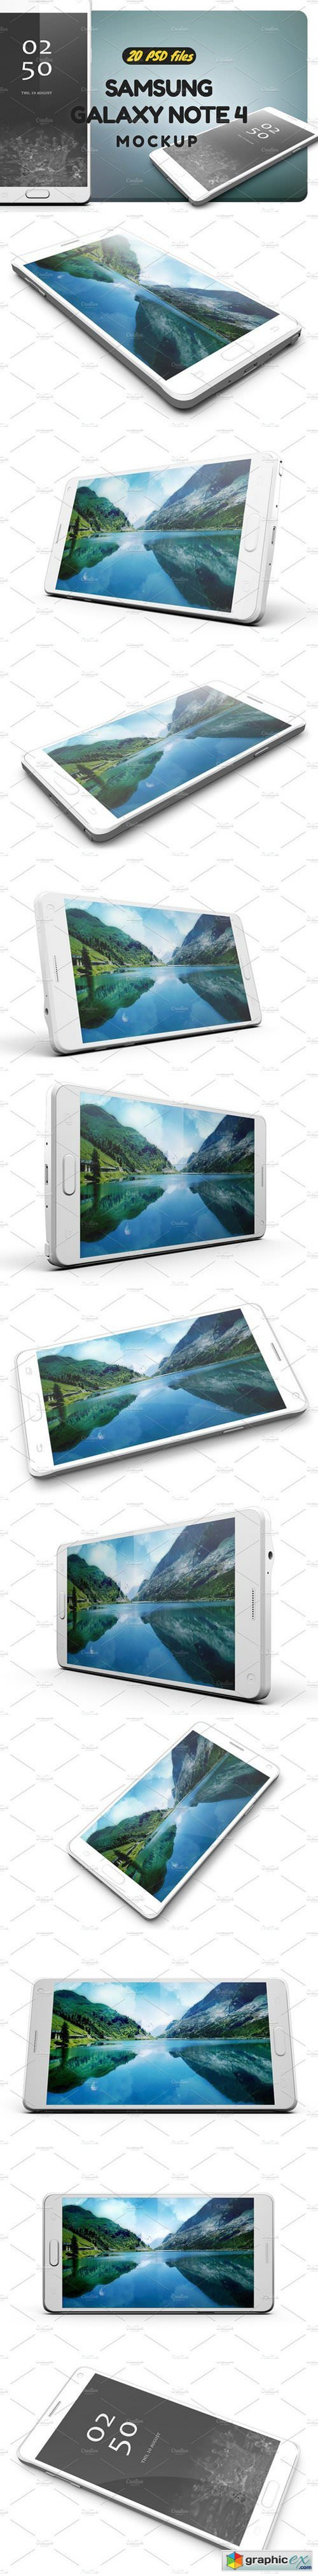 Samsung Galaxy Note 4 Mock-up